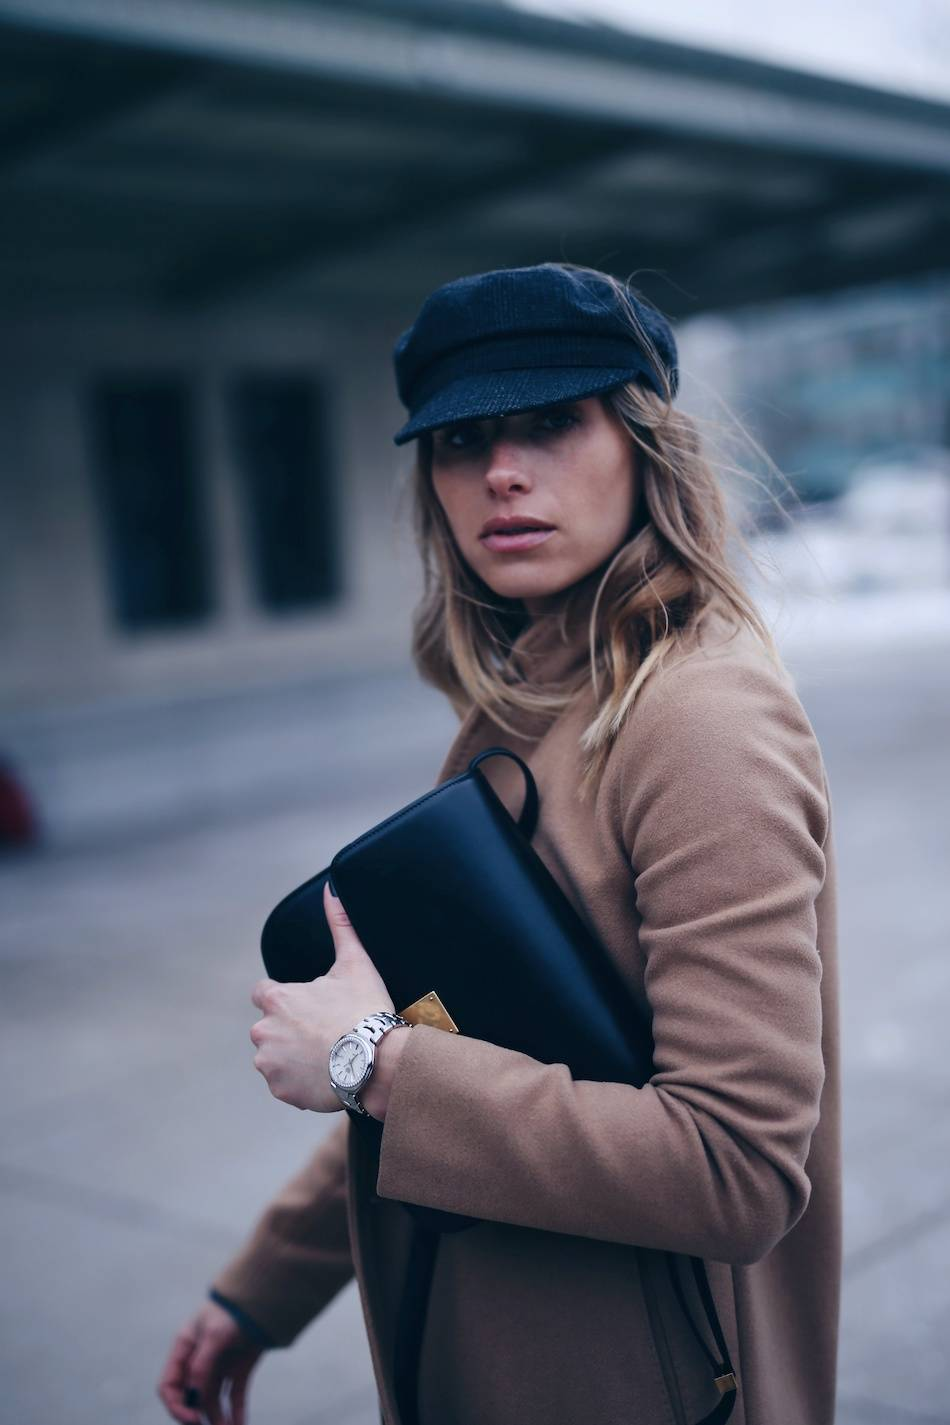 Style and beauty blogger Jill Lansky of The August Diaries Isabel marant Eva newsboy cap on how to grow your blog